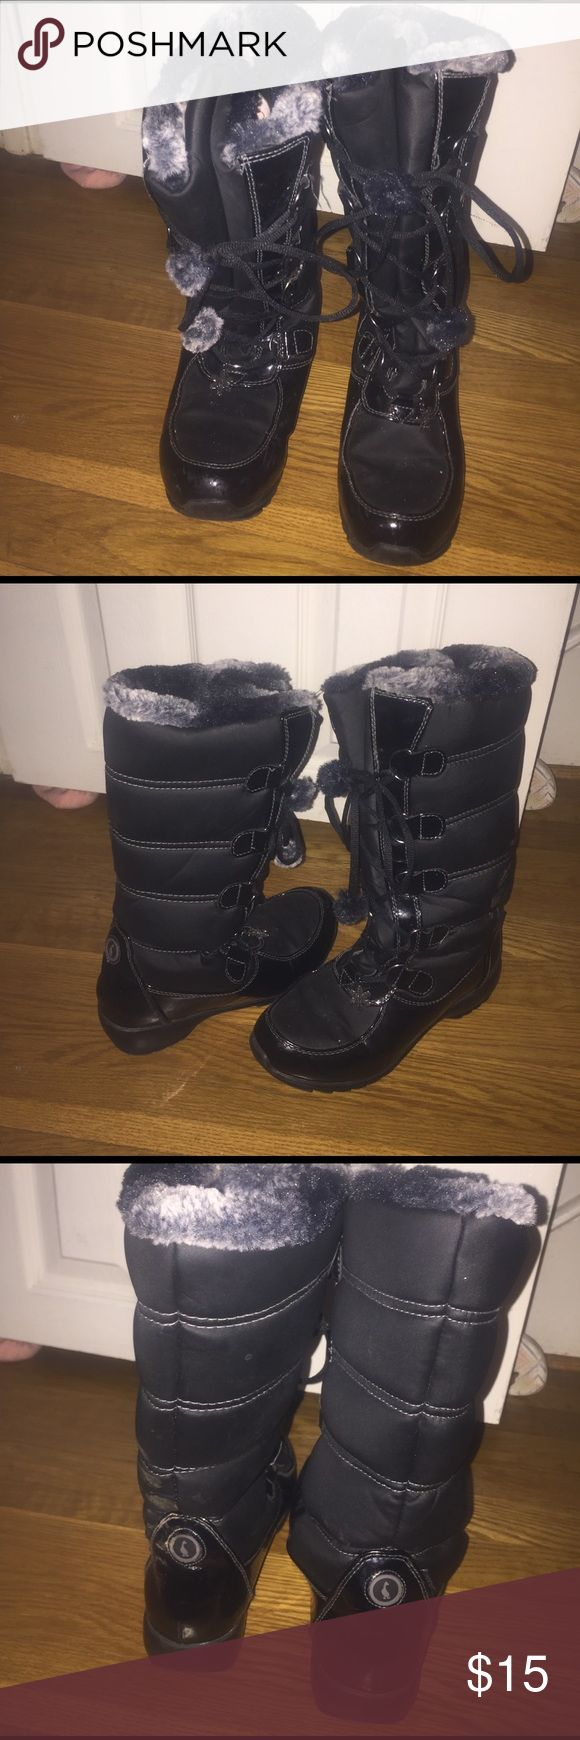 Snow boots Black and very warm Sporto snow boots. I only wore them couple of times. Shoes Winter & Rain Boots